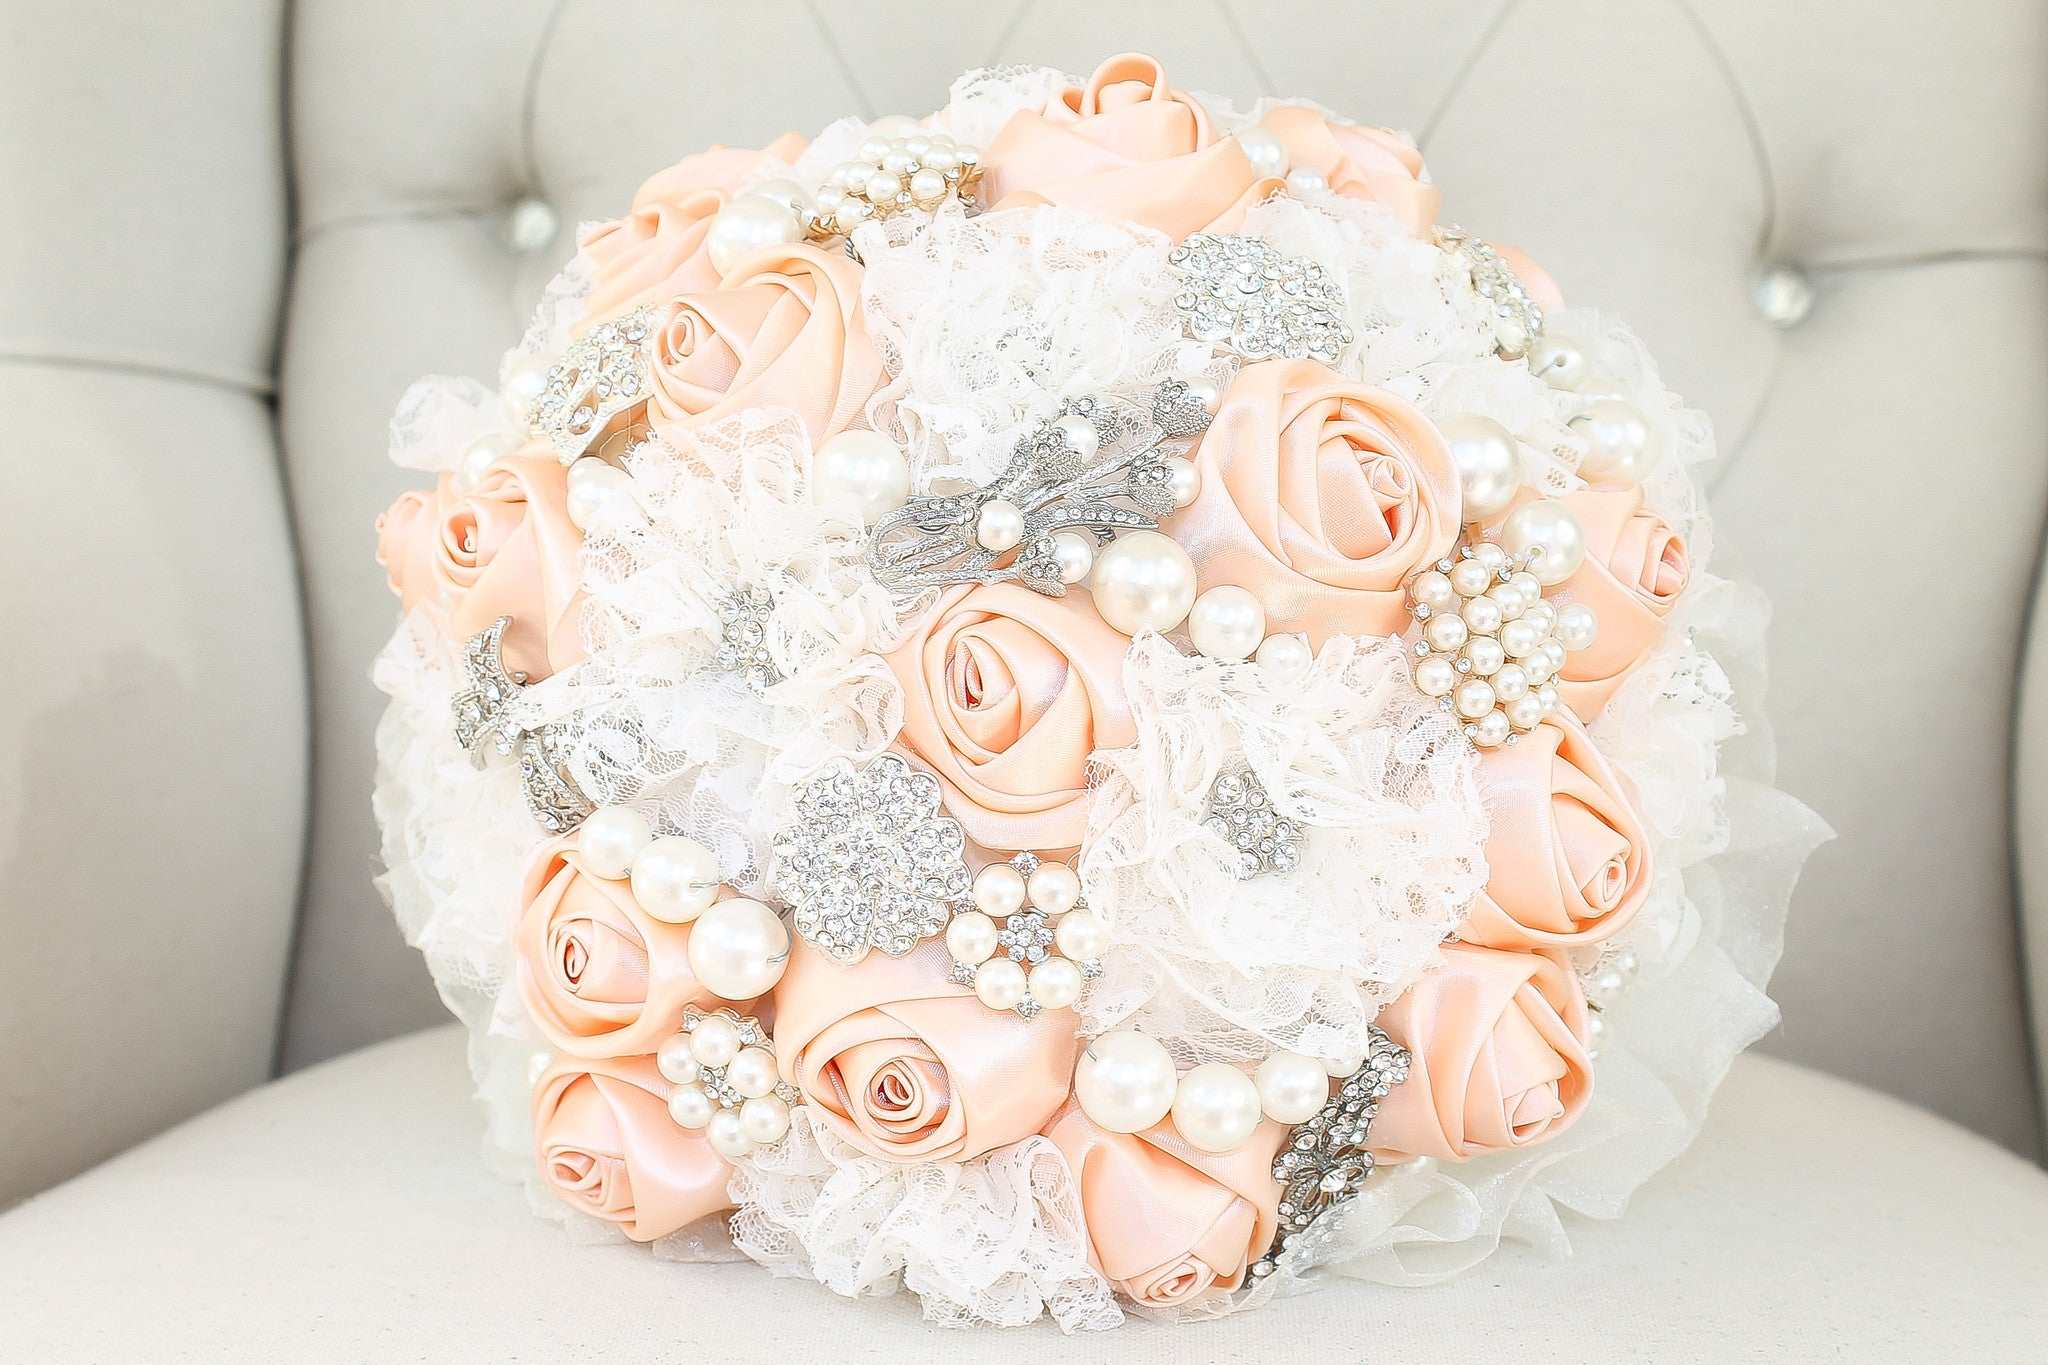 Brooch Bouquet Handmade Lace Satin Ribbon Faux Pearls - Bride Glamor